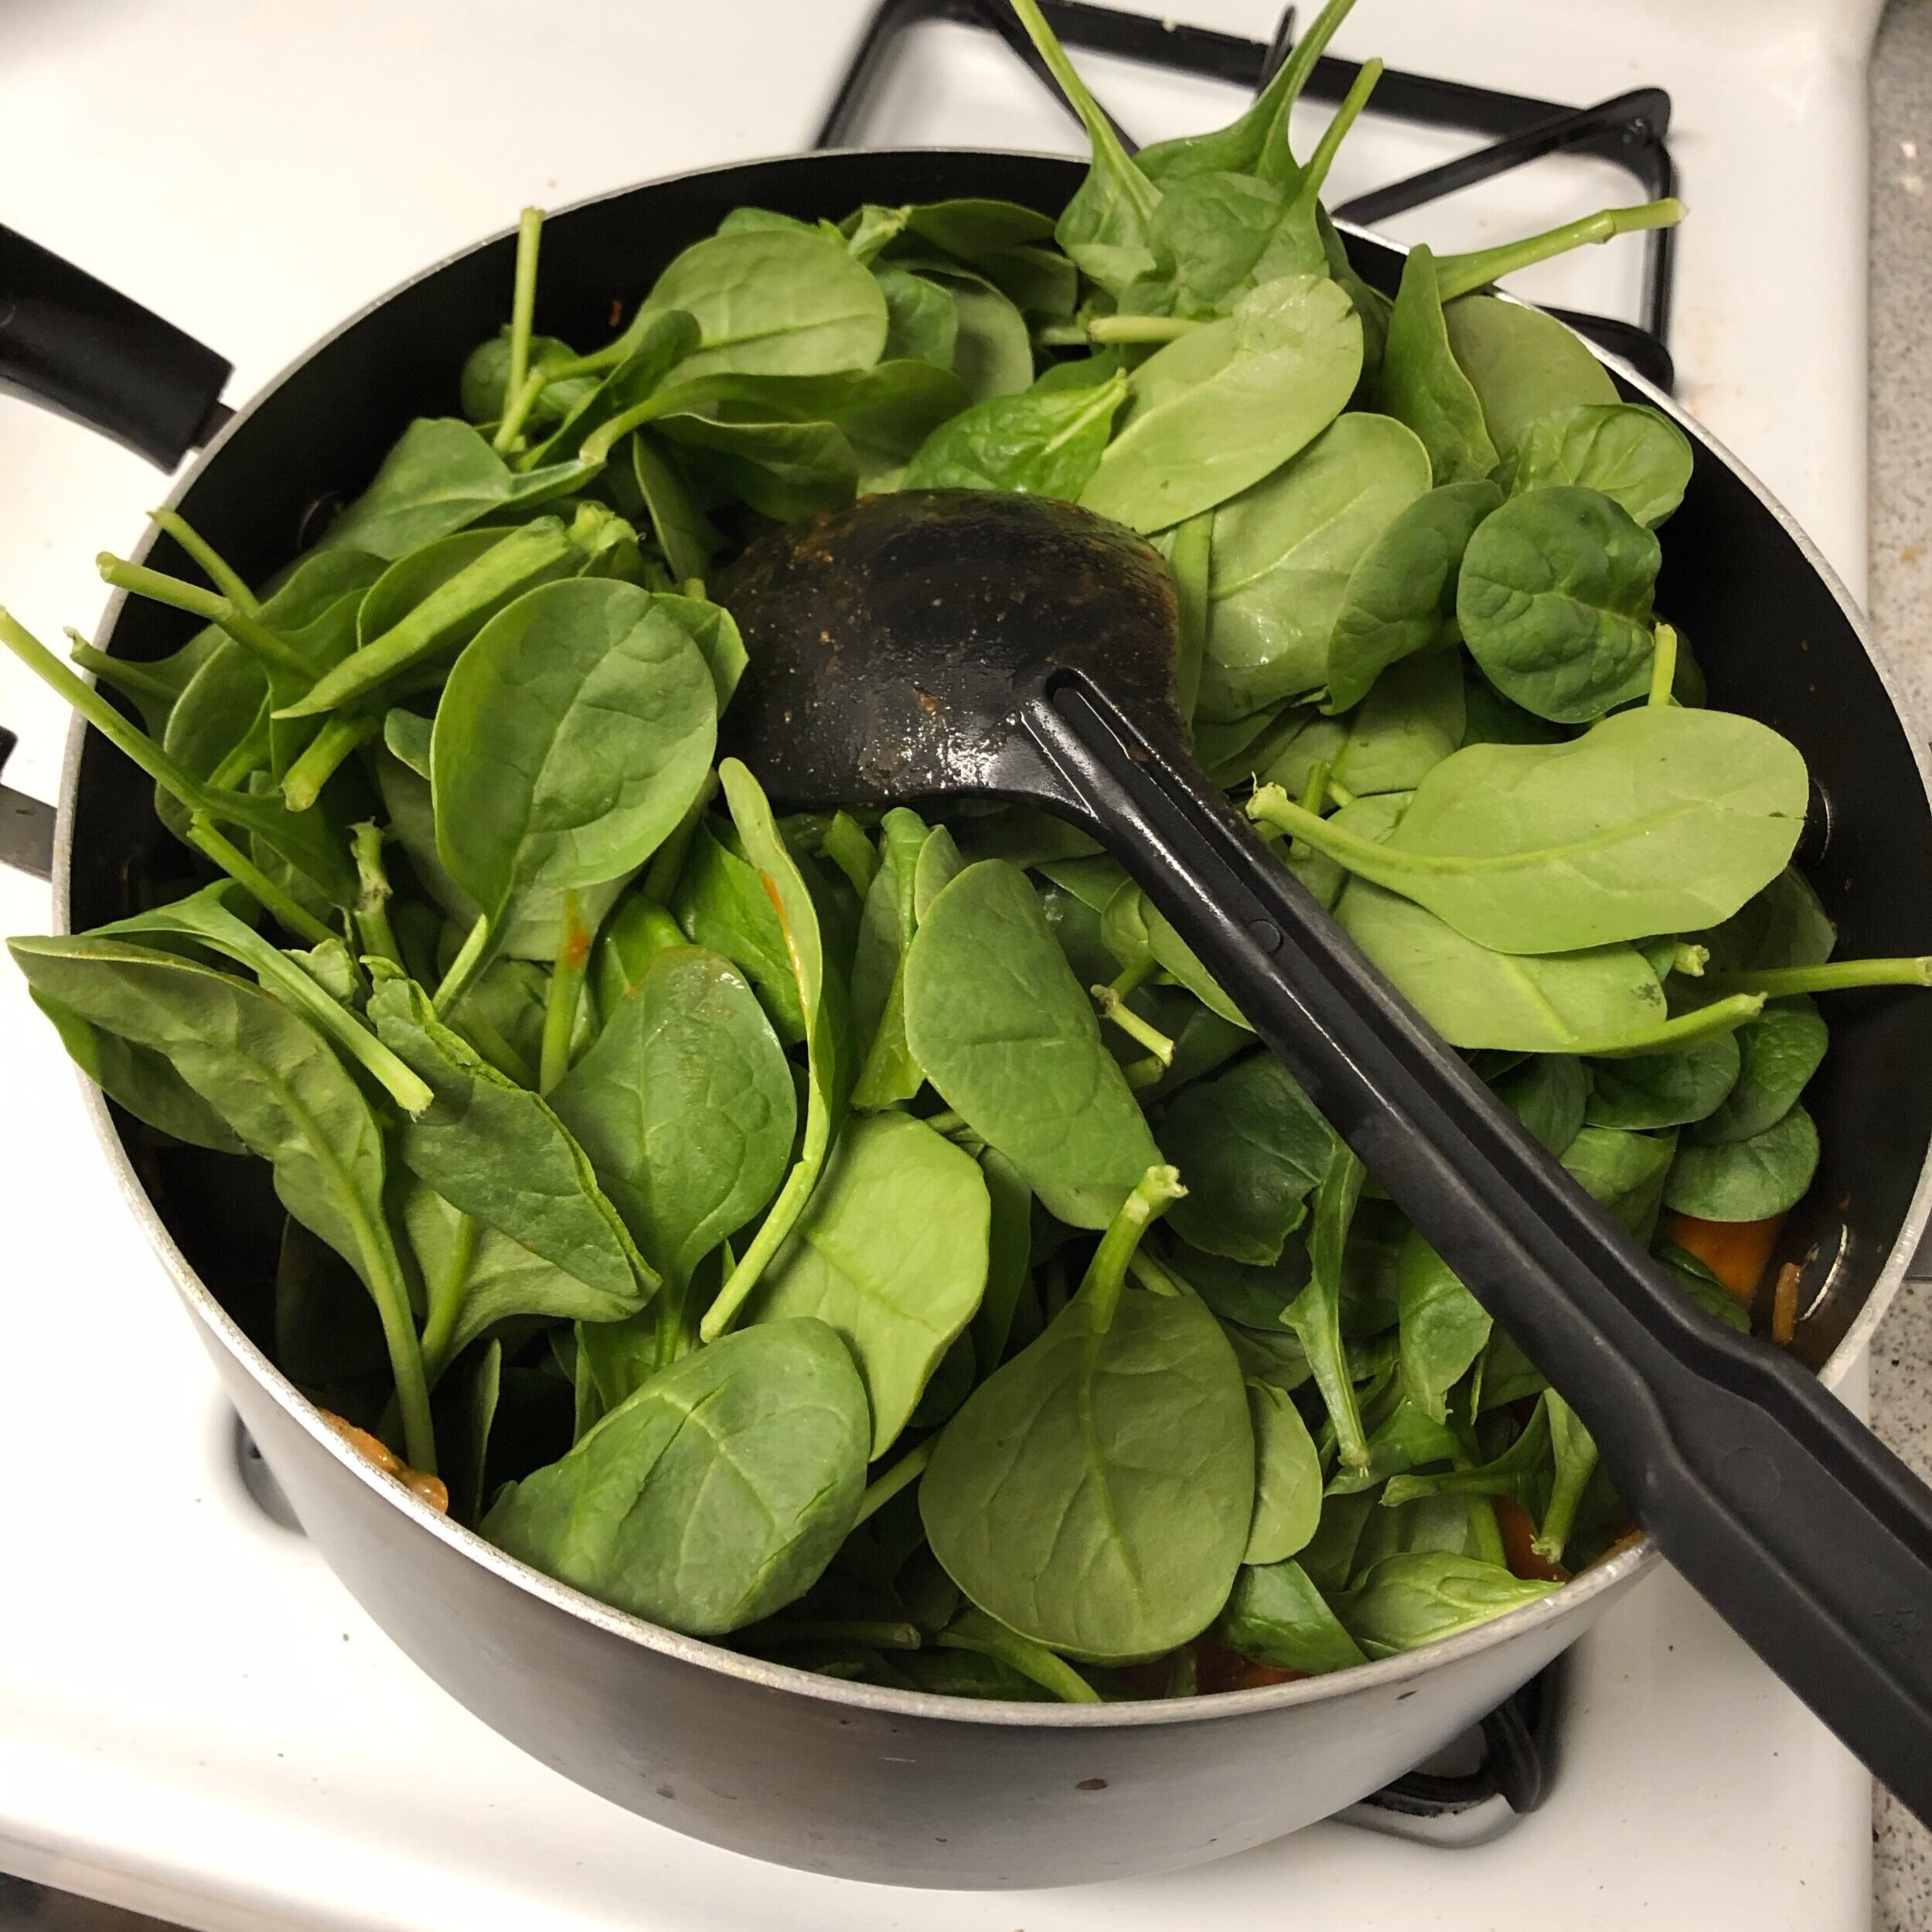 Step 6: The spinach will take up a ton of room at first, but it will cook down within about 5 minutes.